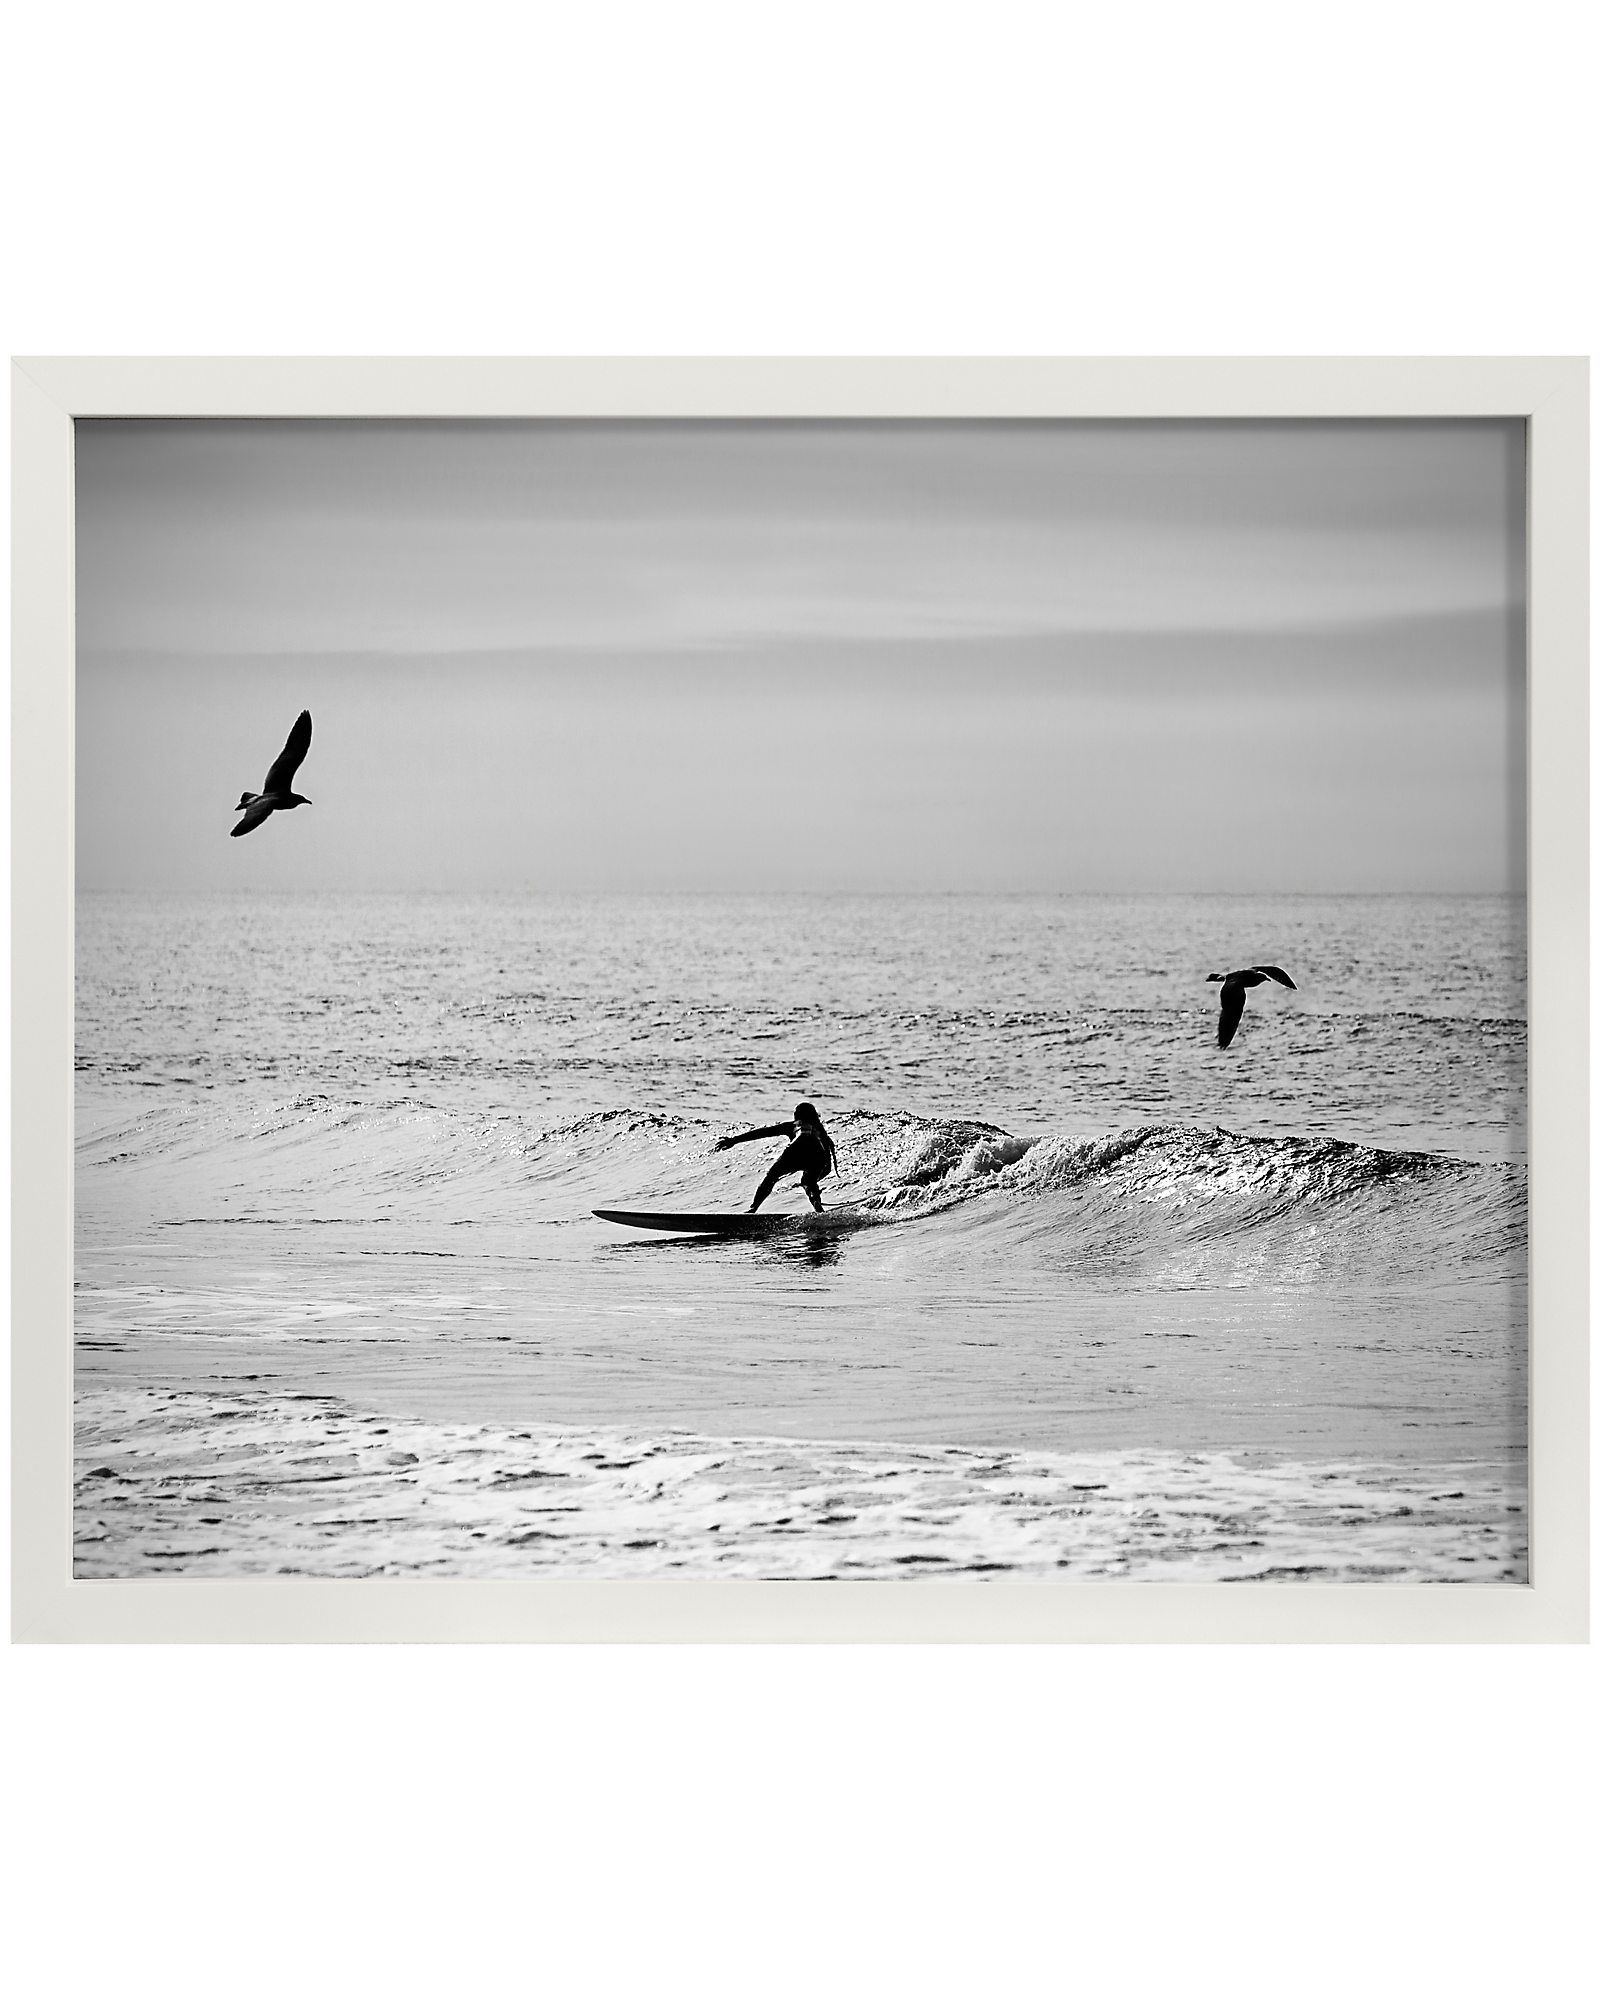 Photographic print mounted and framed in natural wood. 16.75\